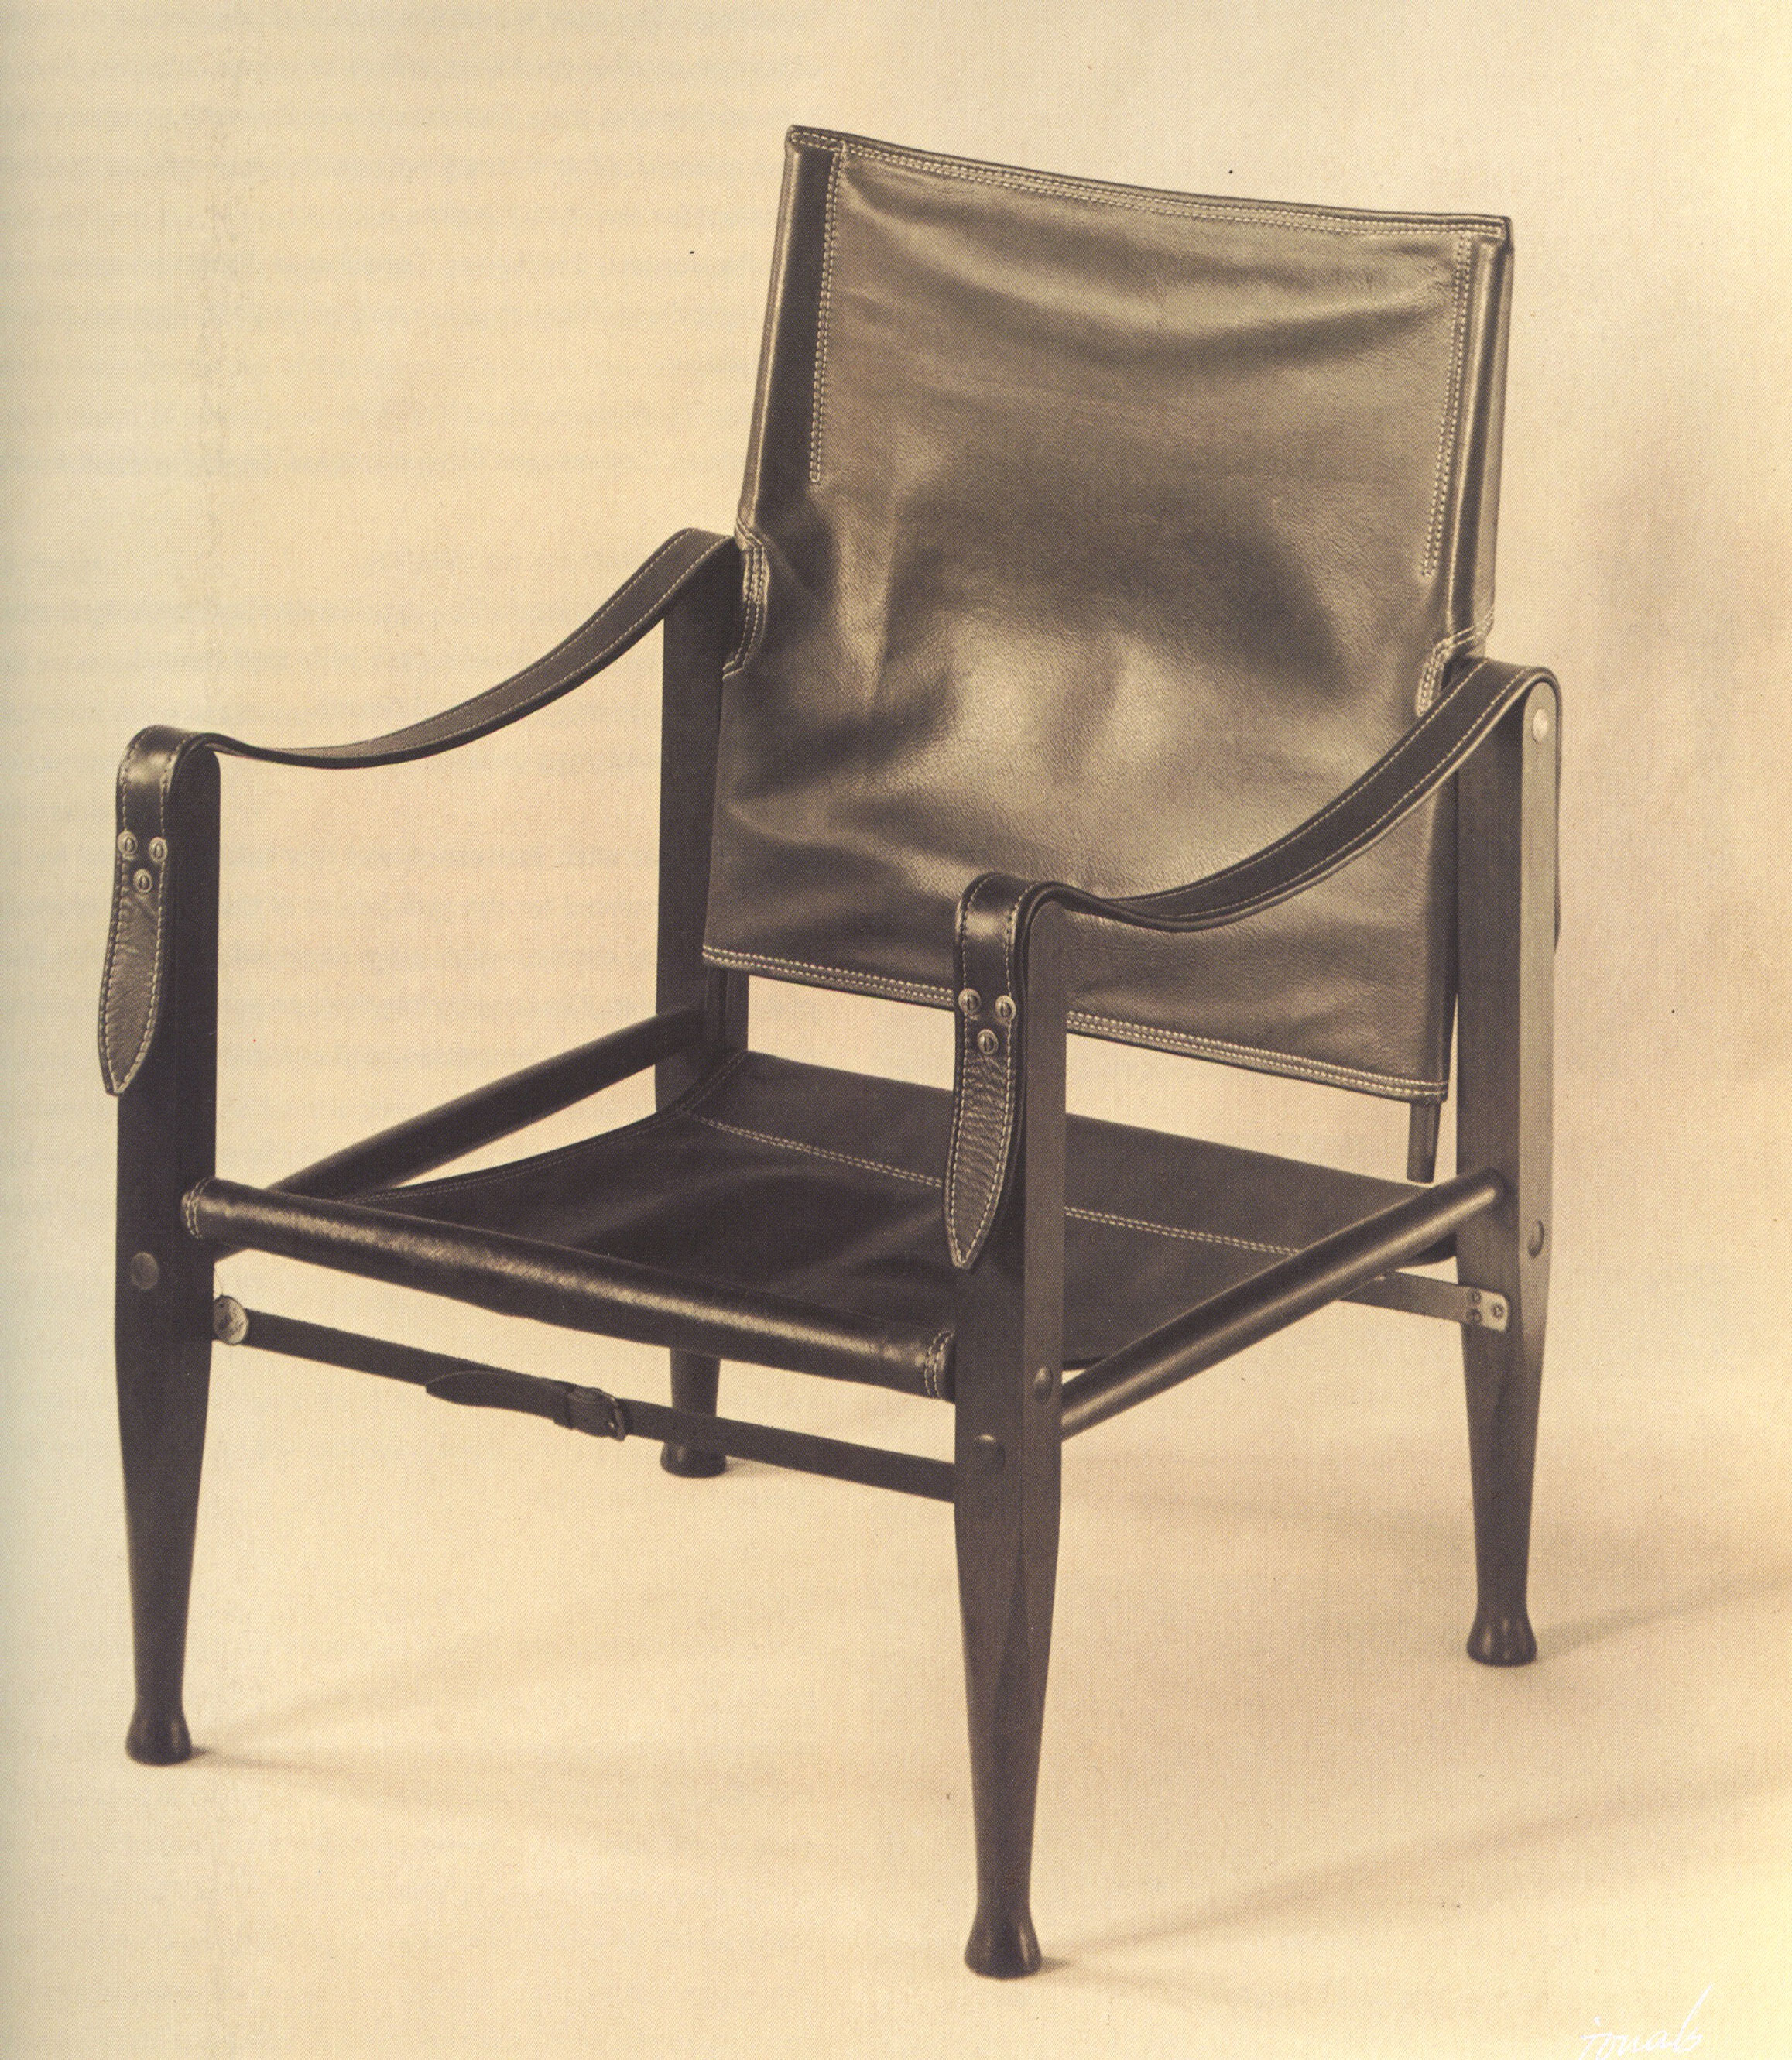 Safari Chairs Kaare Klint Safari Chairs Early Later Lost Art Press